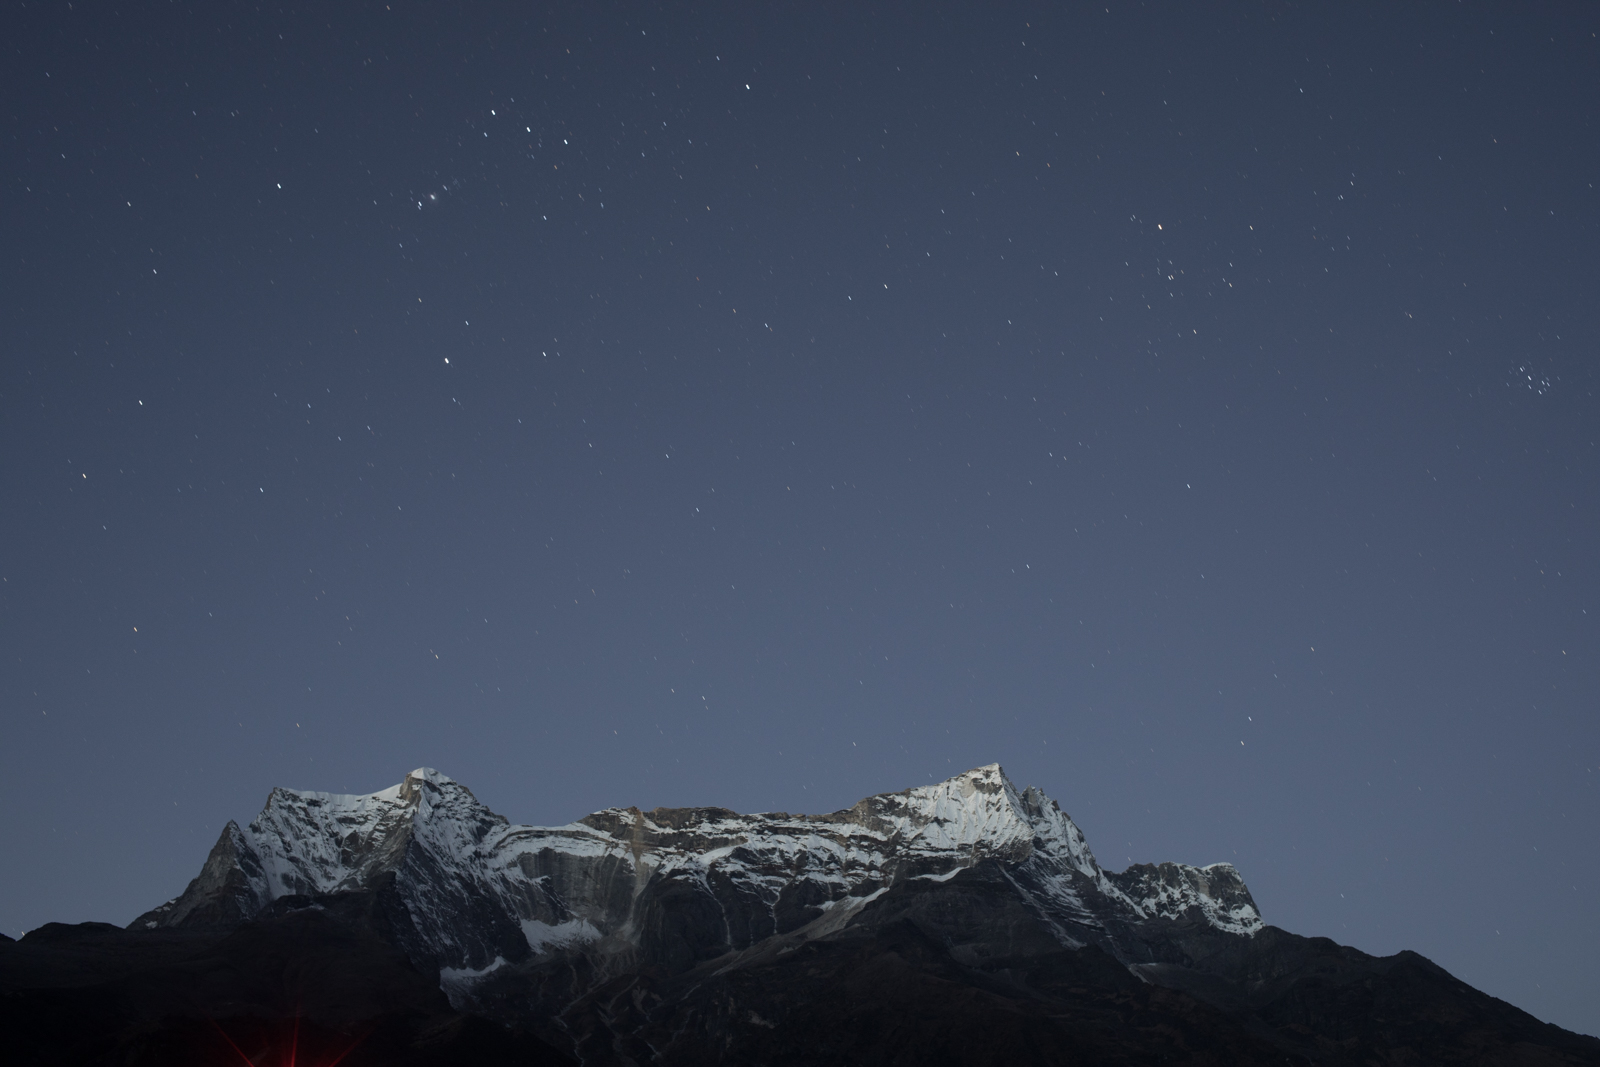 Stars over Kongde Lho 6,187 m / 20,299 ft, Nepal. (Elevation credit: PeakFinder)